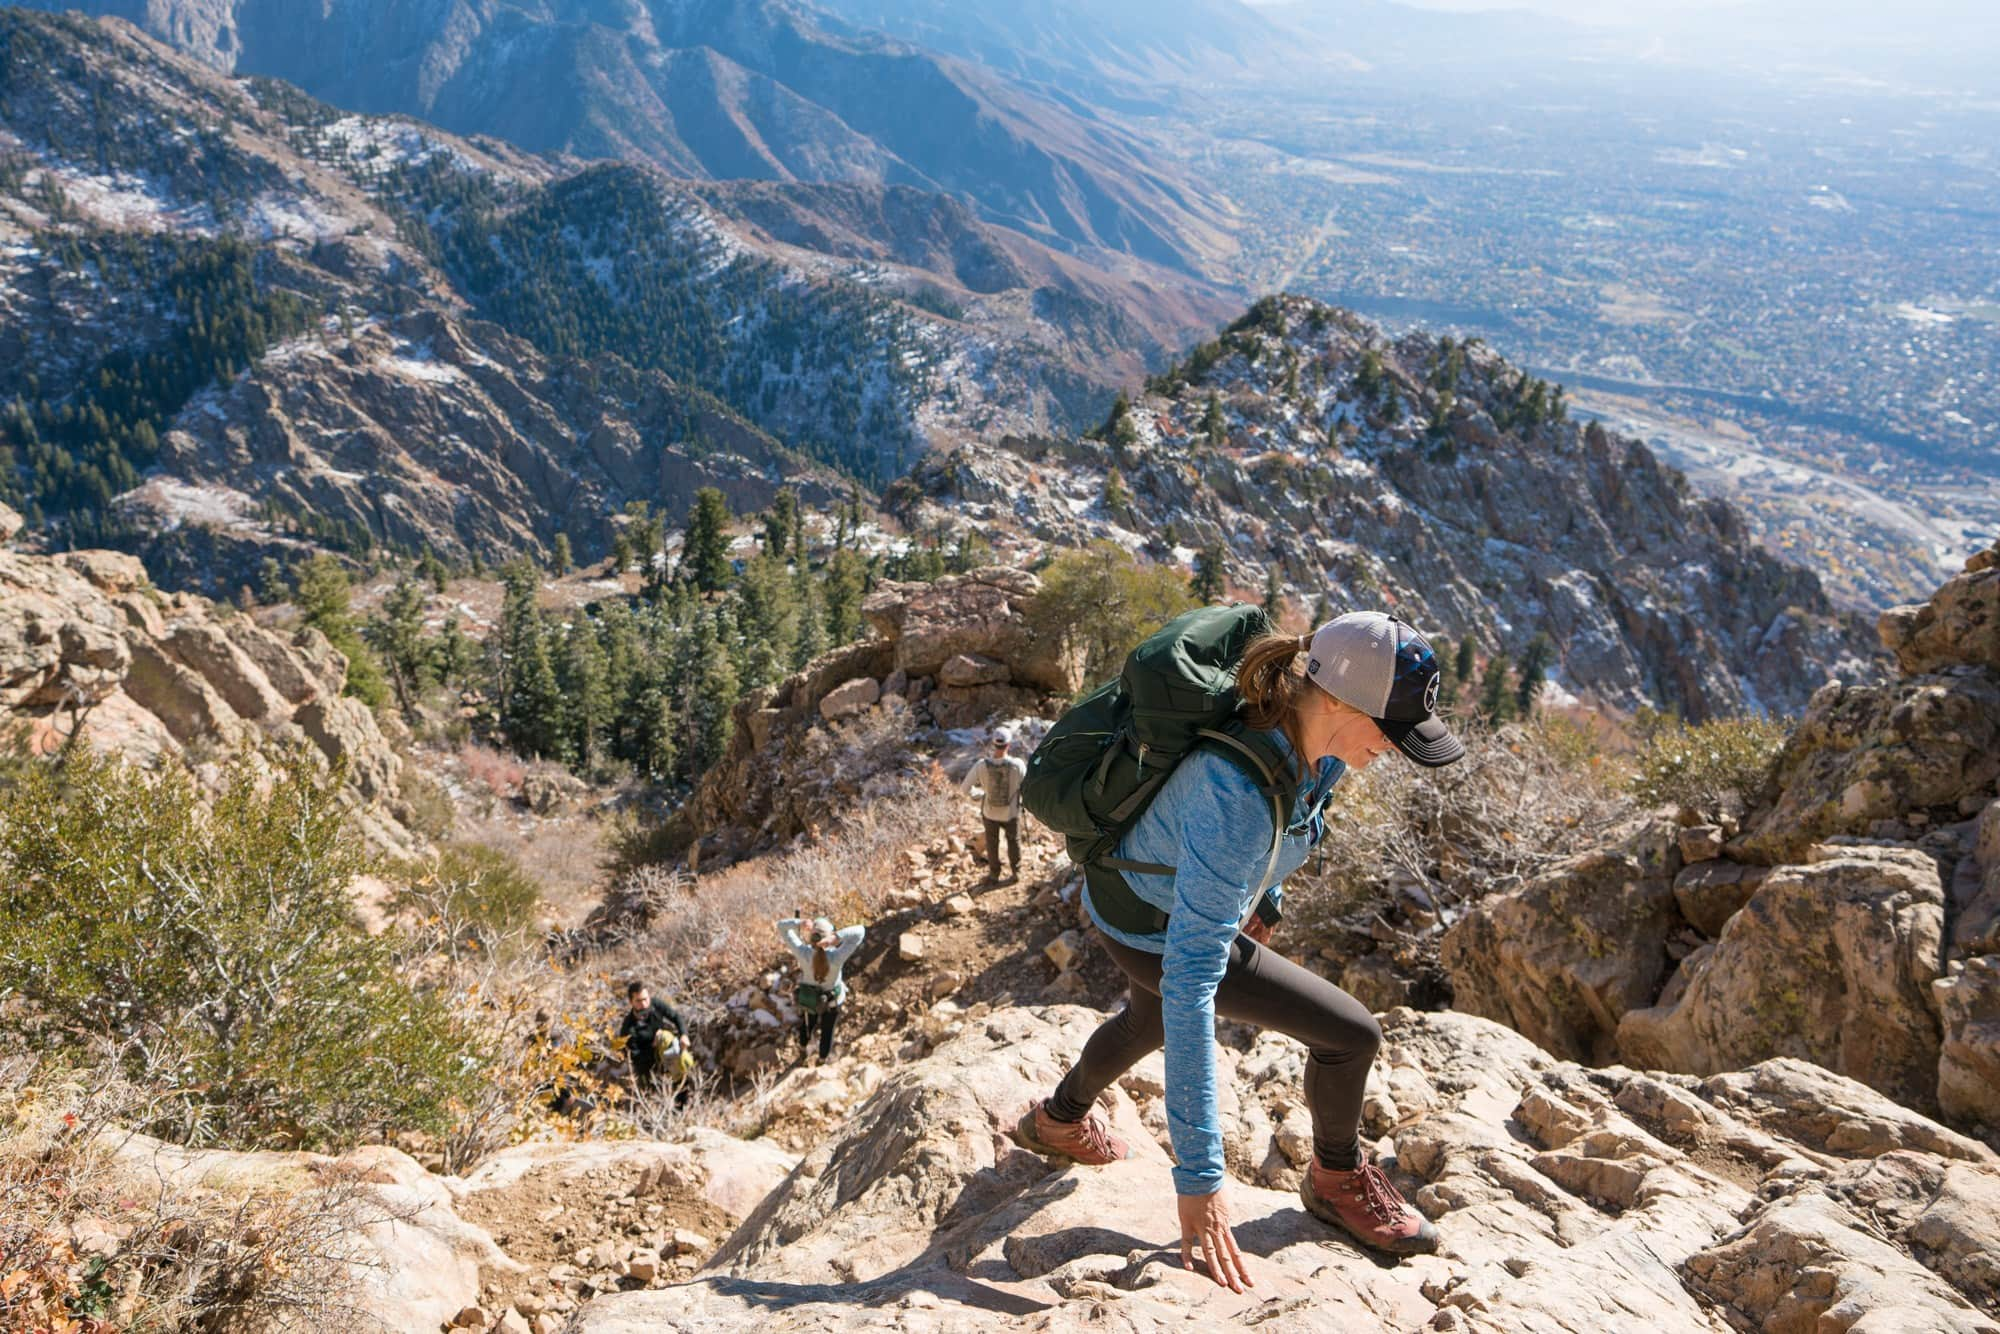 Backpacking 101: How to Prepare for an Overnight Hiking Trip